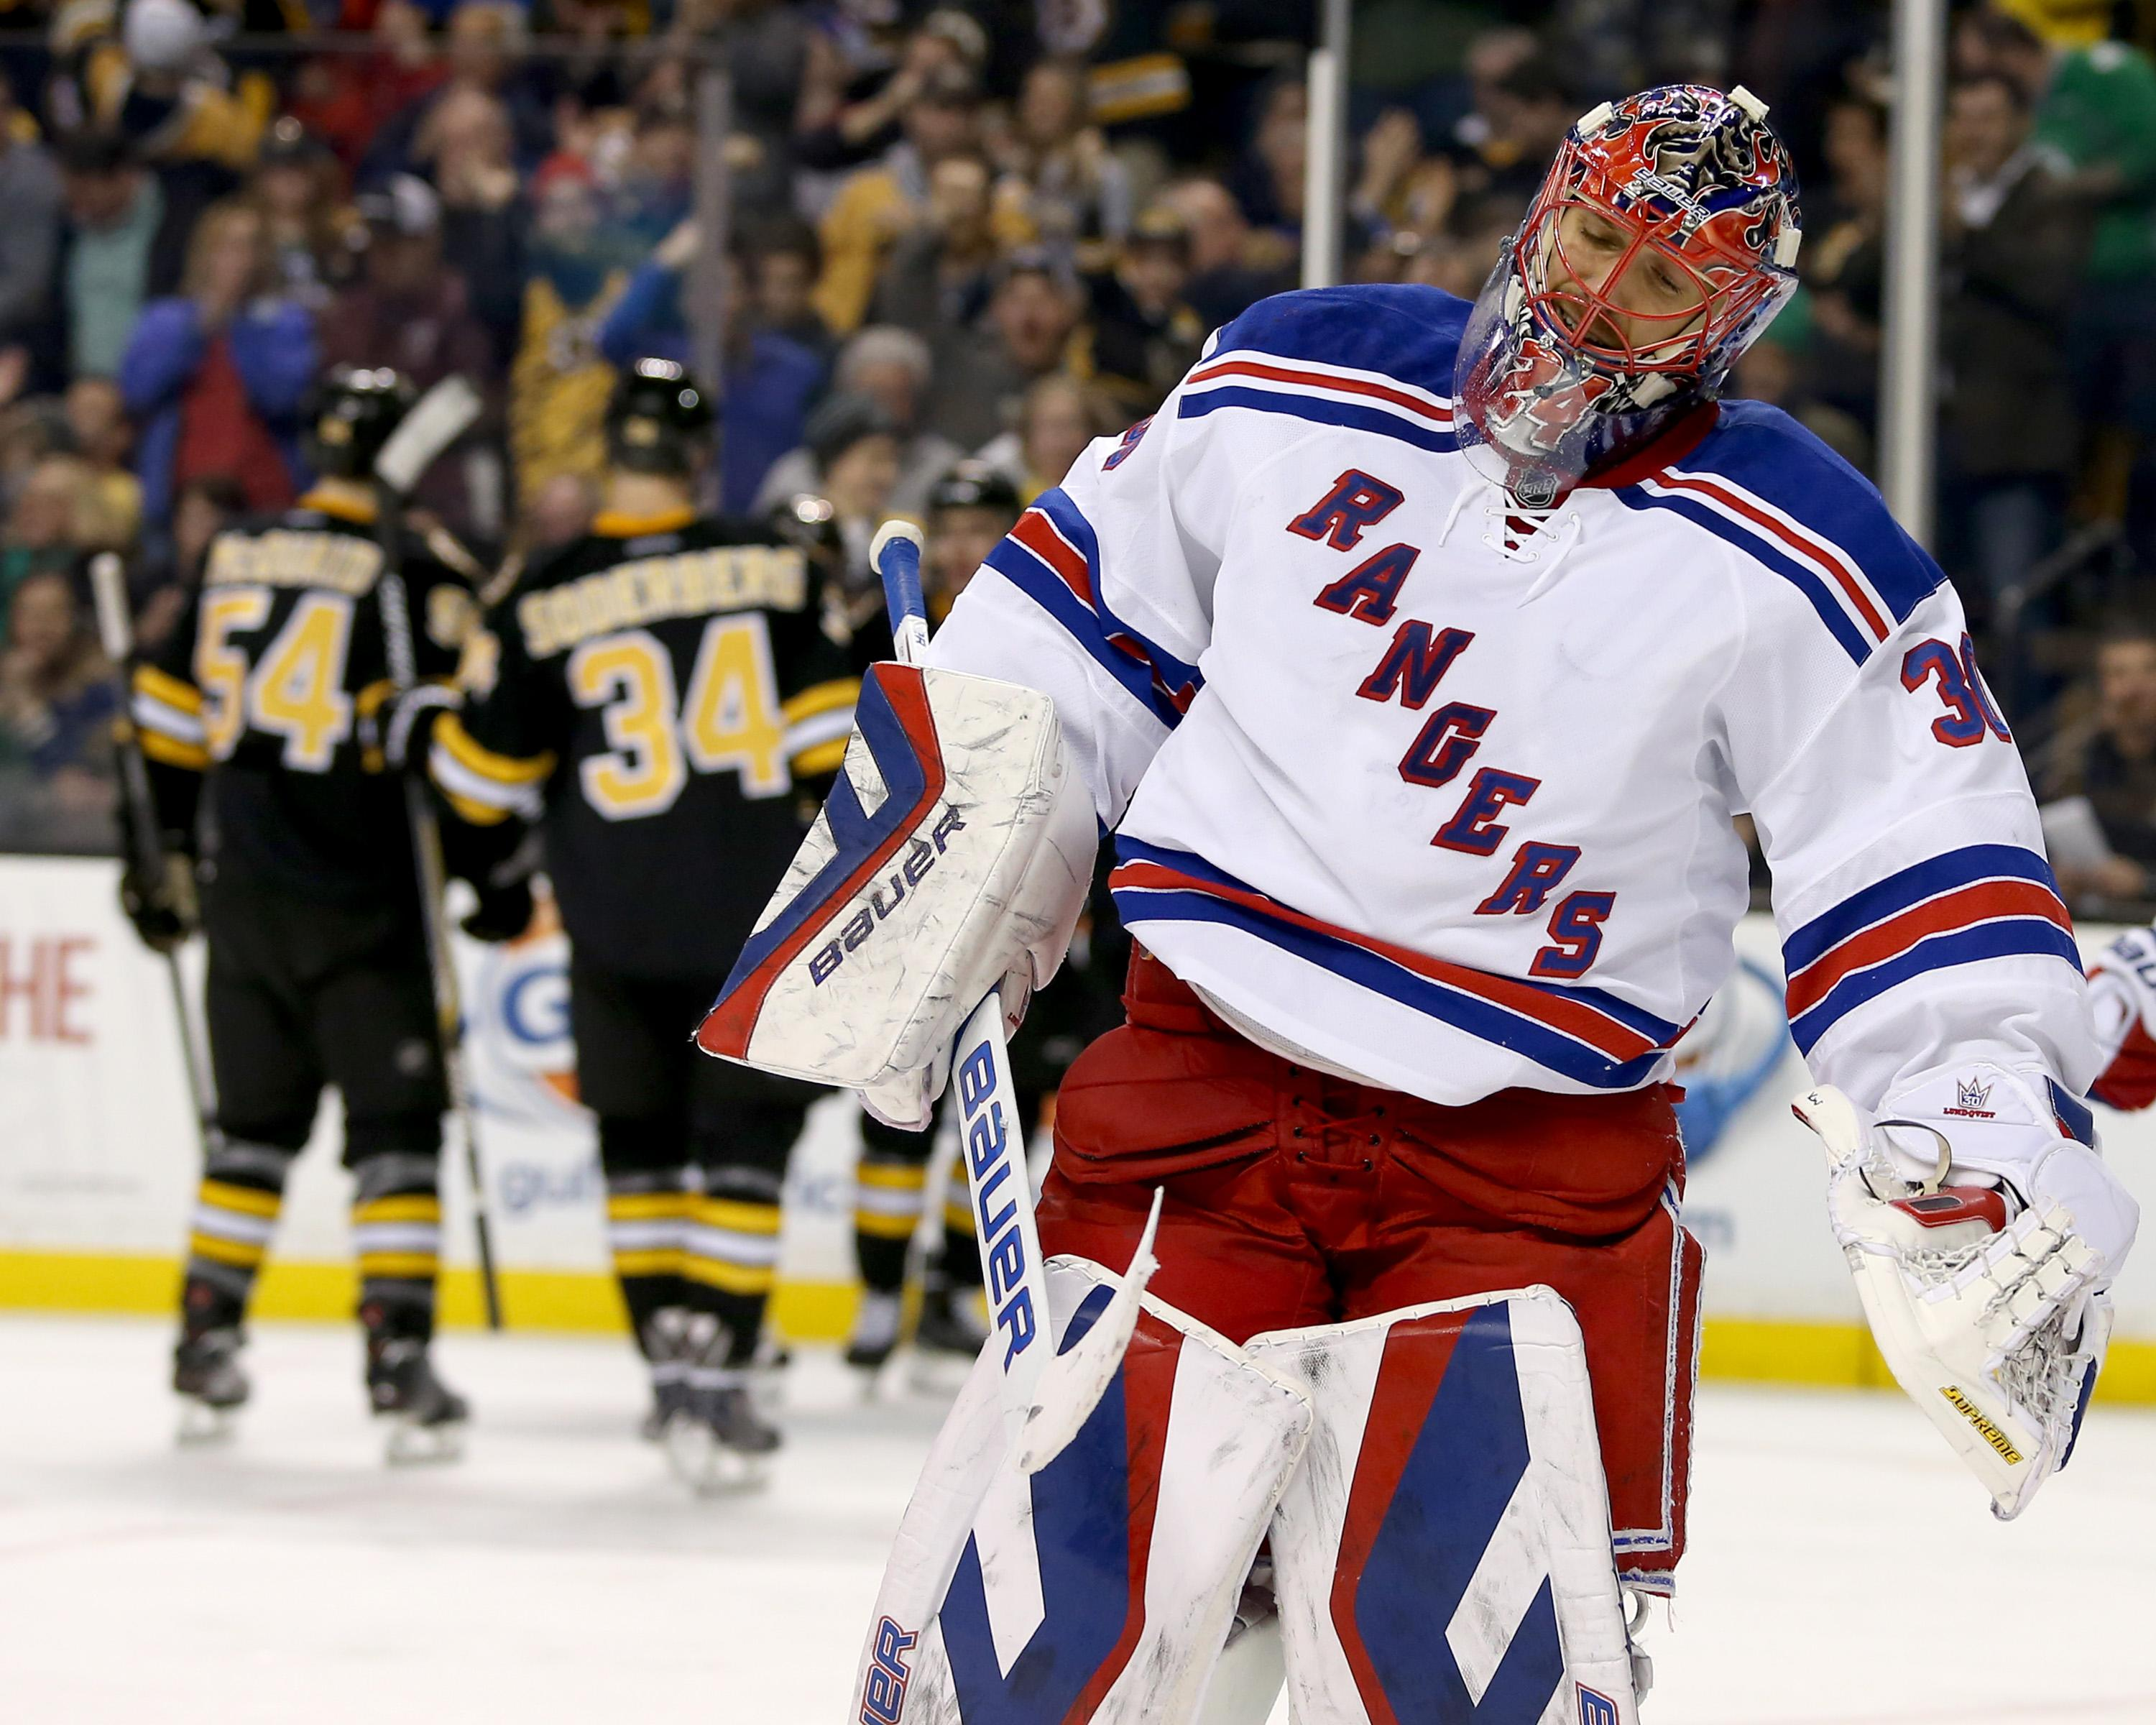 Lucic scores 2 goals in Bruins' 4-2 win over Rangers